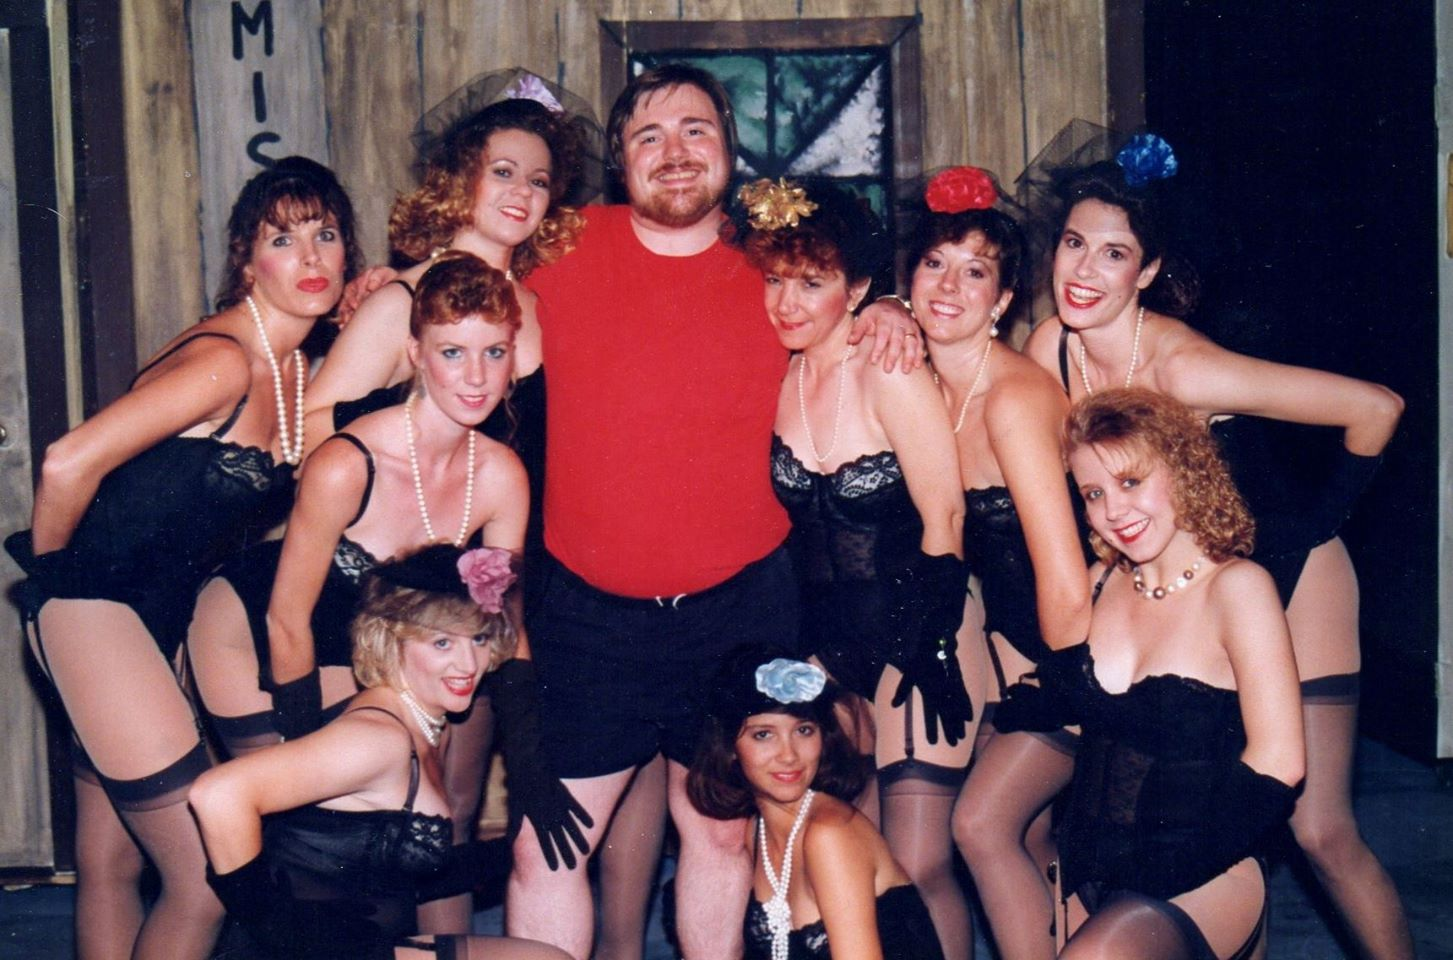 Guys and Dolls at Theater Works in 1990. Among those pictured, Robyn Allen, Wes Martin, Christine Lone, Tj Ronayne, Shawnna Pomeroy, Maryann Martin and Lauren Schieffer. (Photo credit unknown)